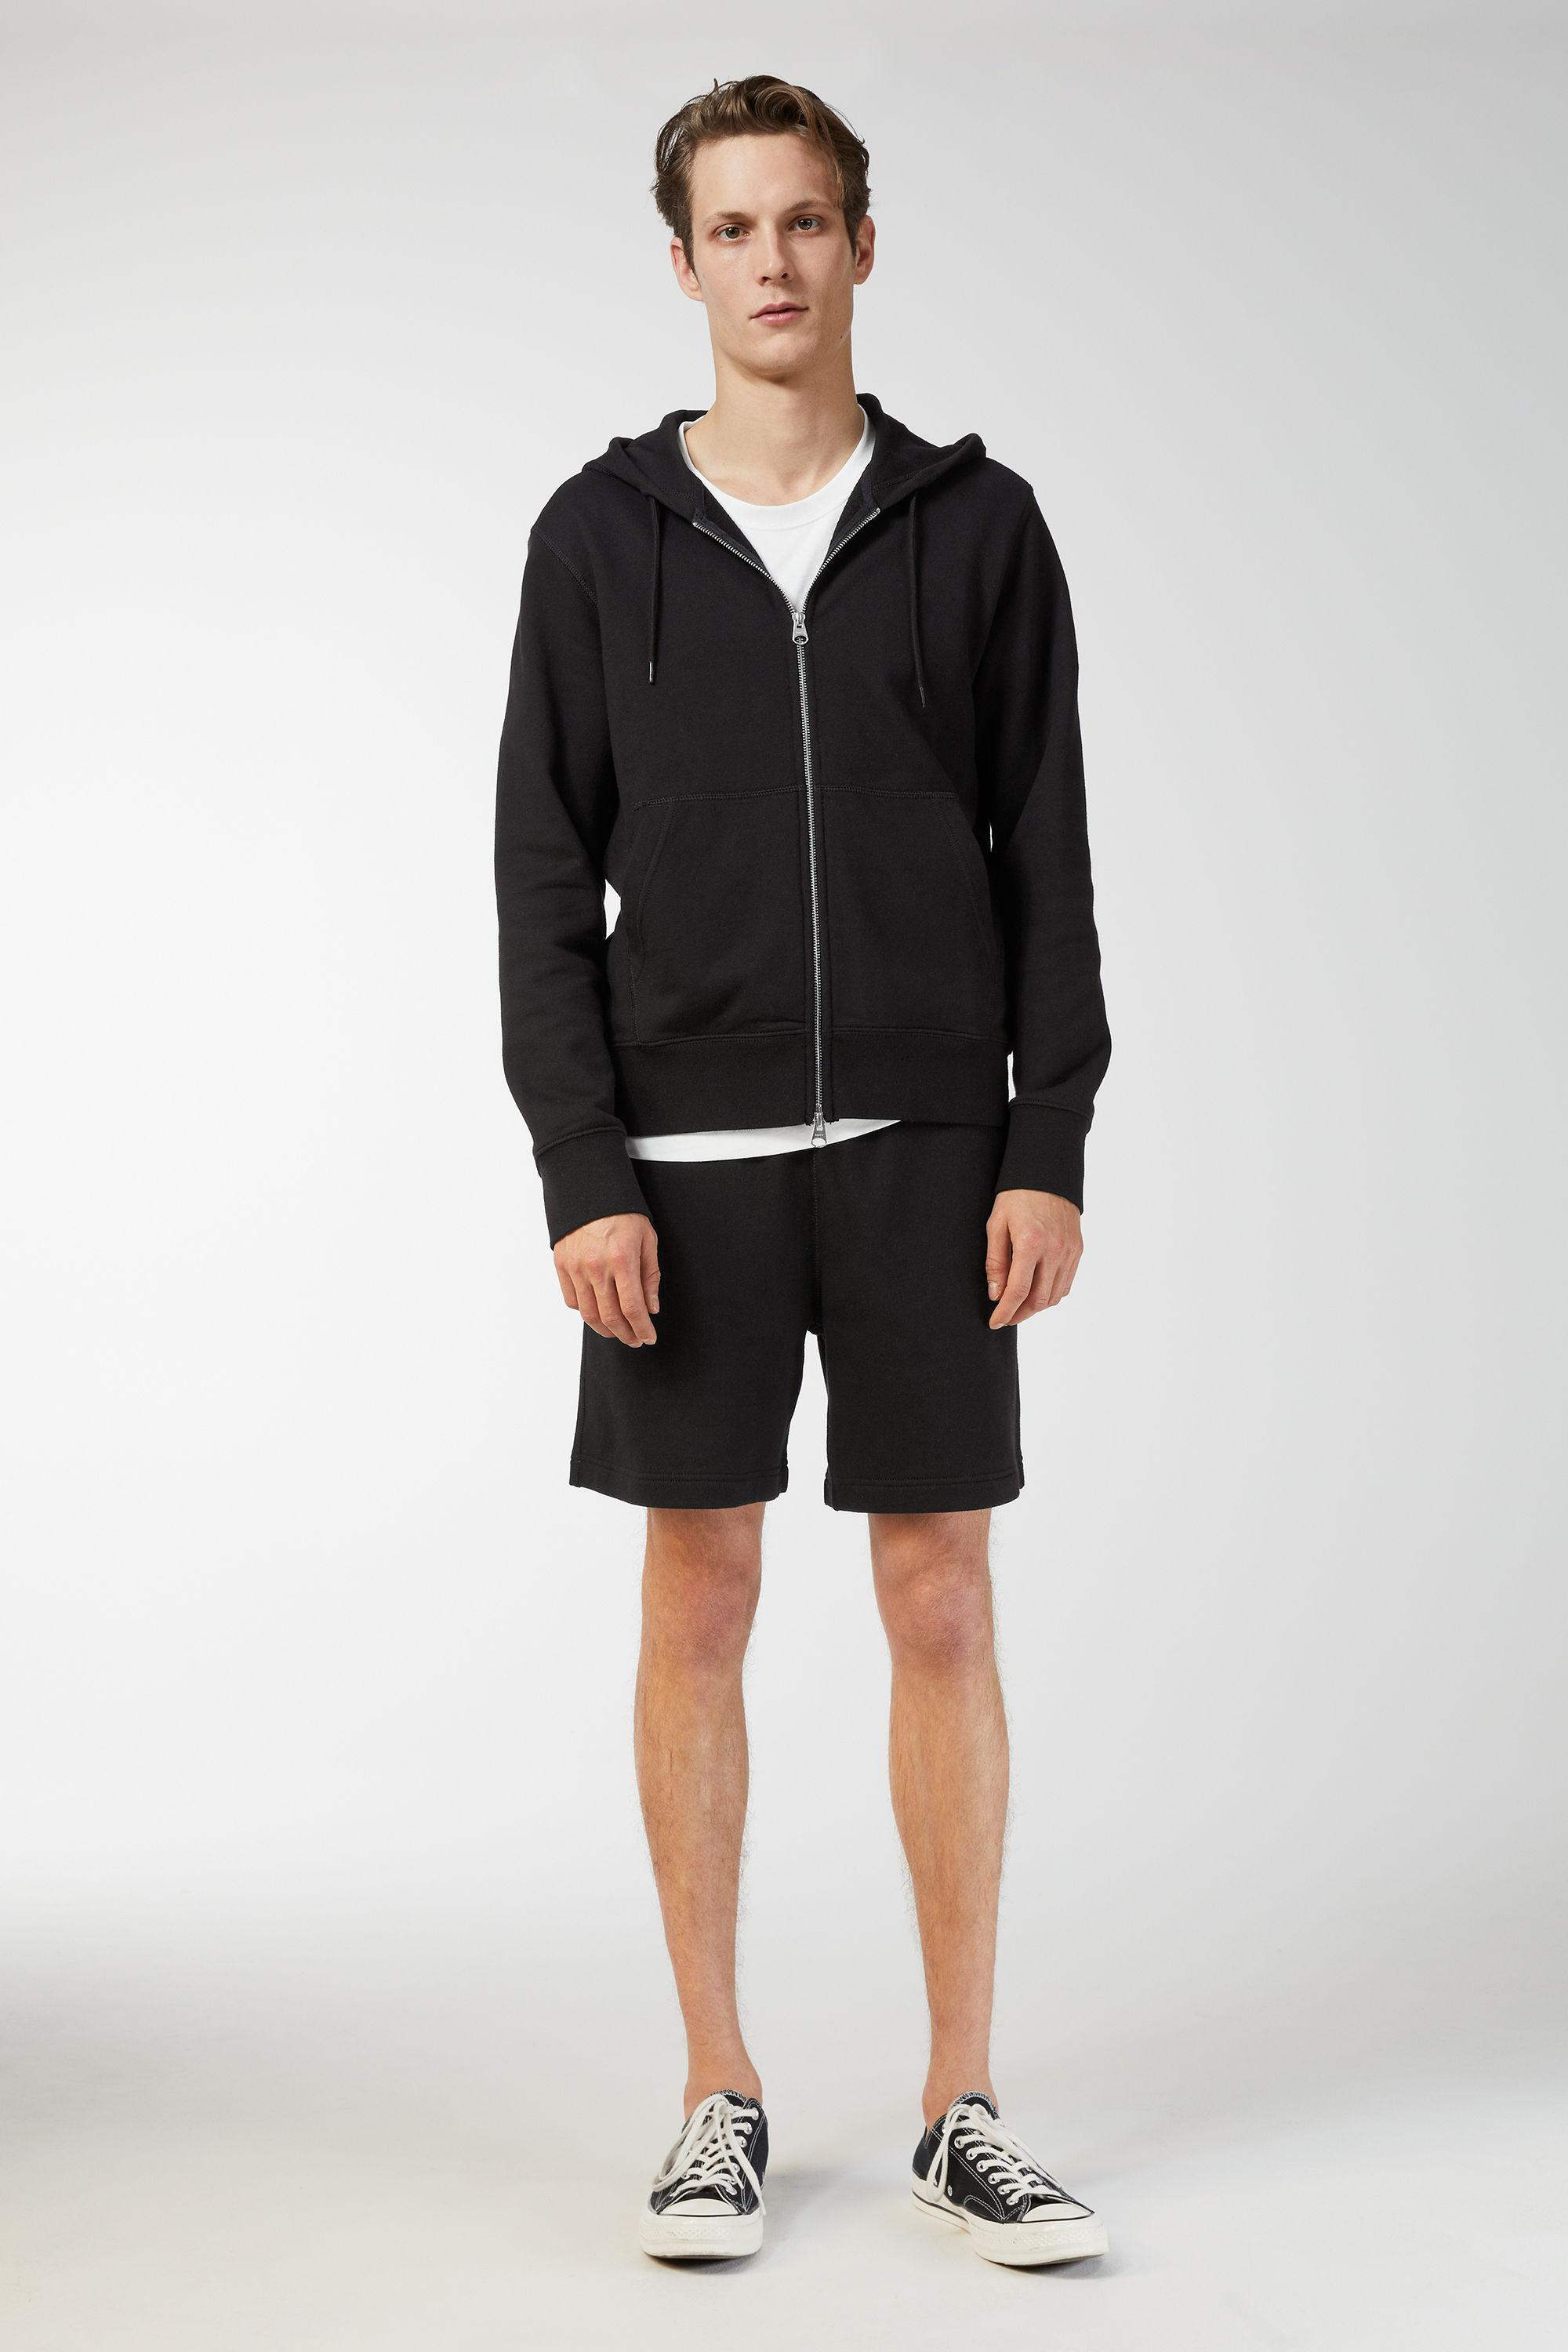 ARKET Terry French Black Men's Shorts Tracksuit ZRprZ4qnxw